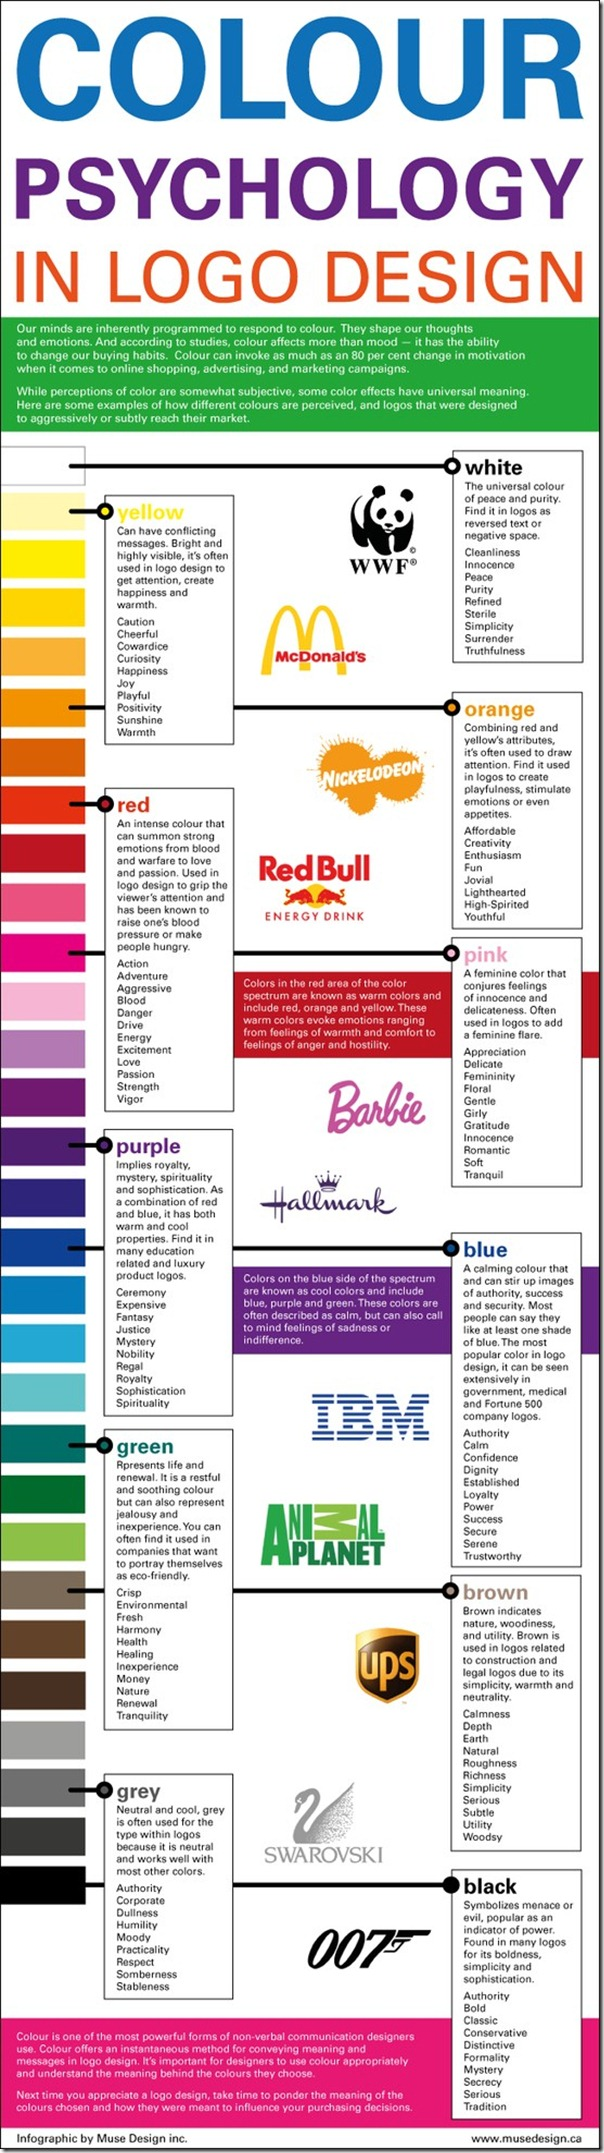 color-psychology-in-logos